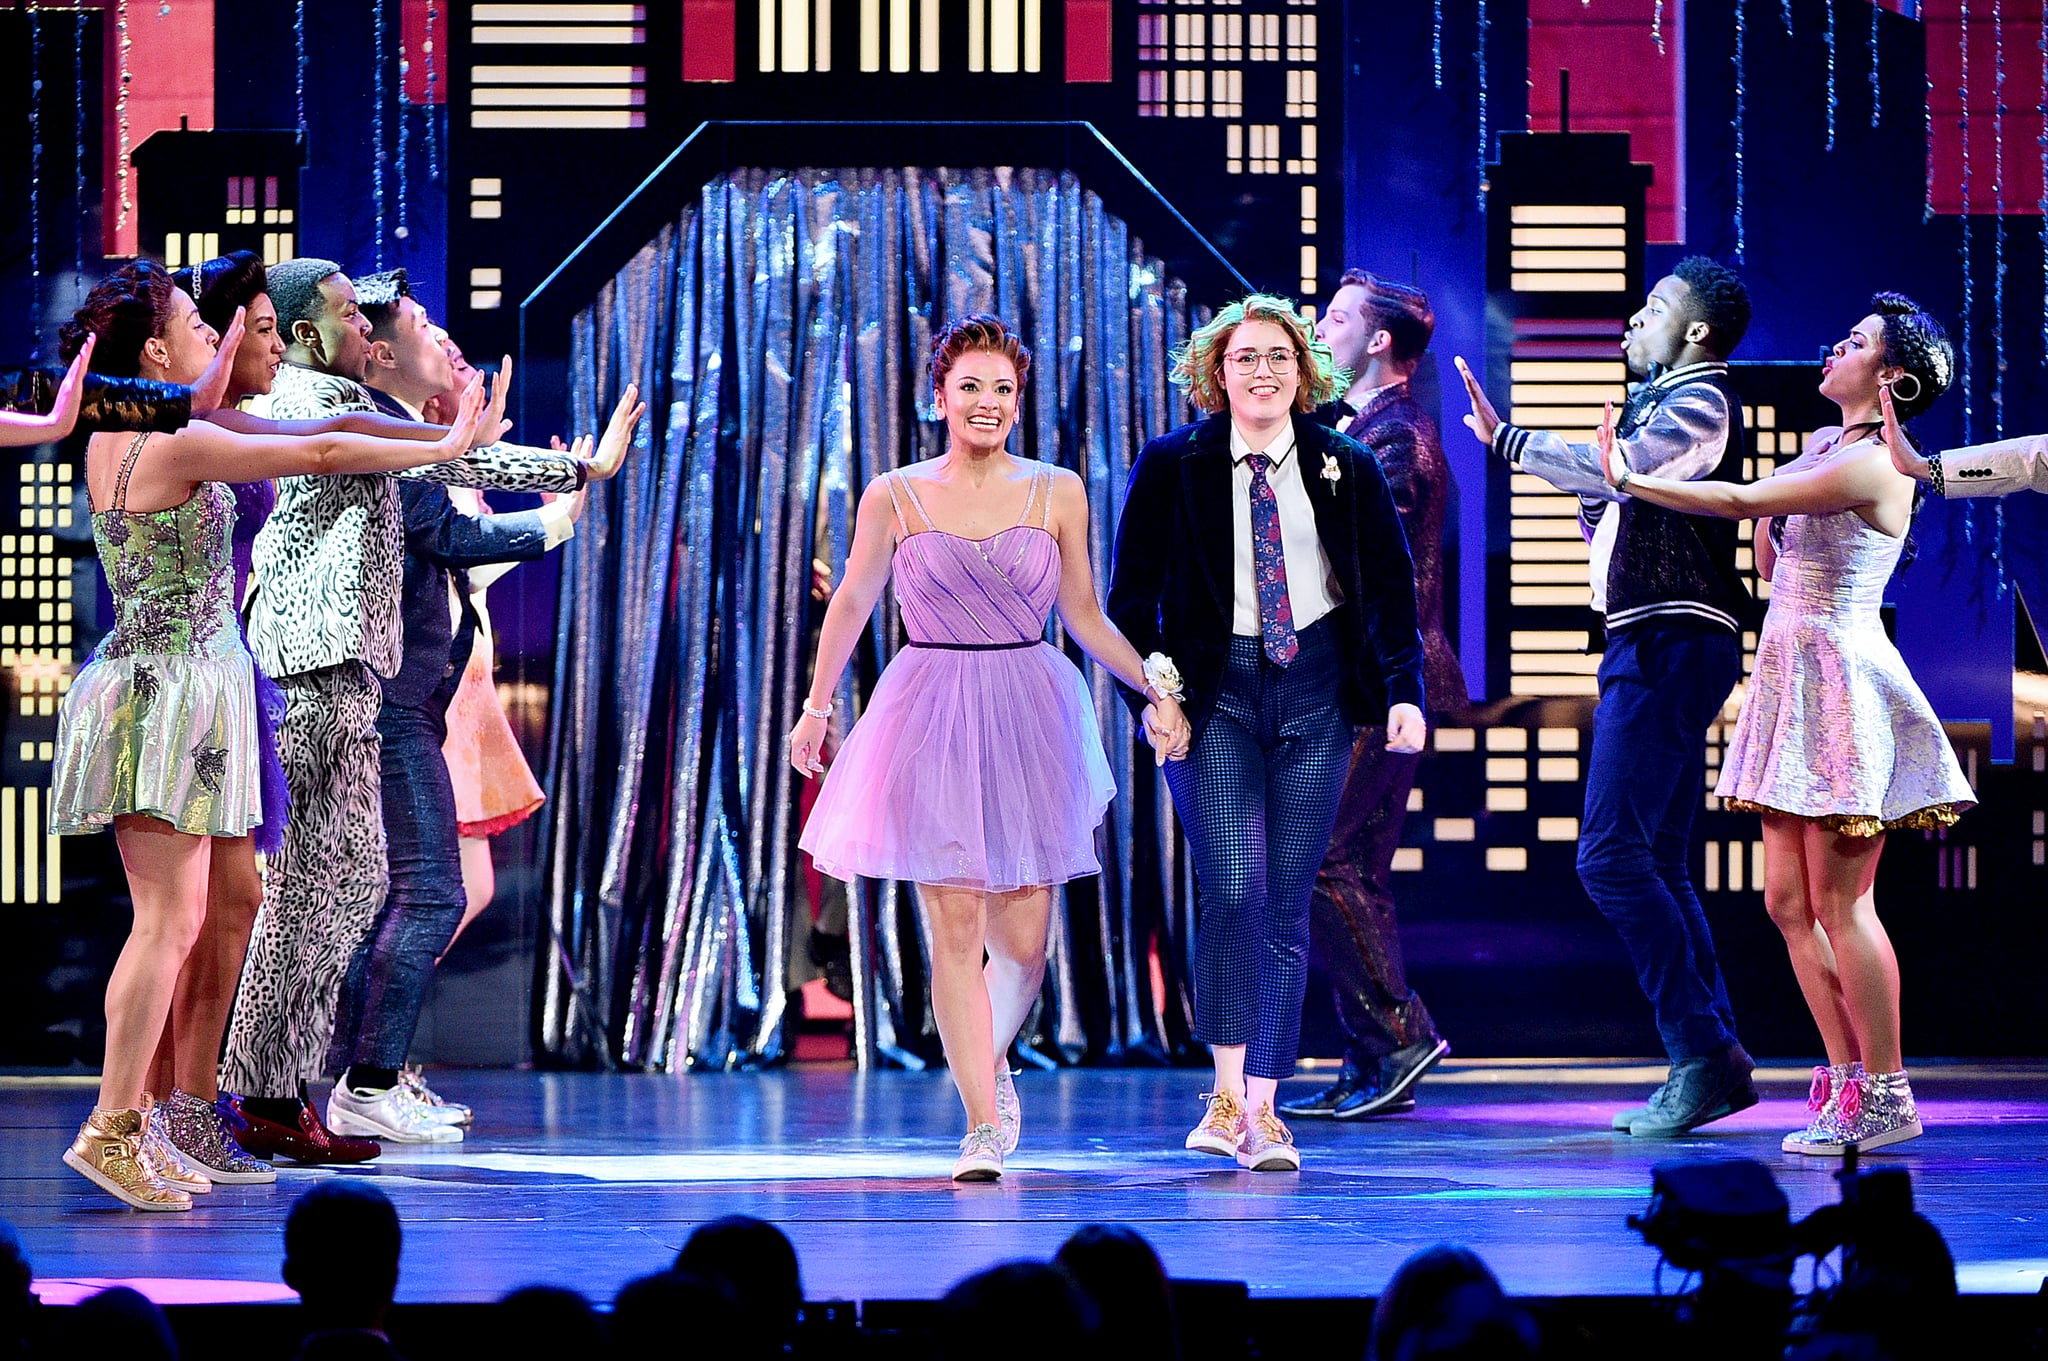 NEW YORK, NEW YORK - JUNE 09: Isabelle McCalla, Caitlin Kinnunen, and The cast of The Prom perform onstage during the 2019 Tony Awards at Radio City Music Hall on June 9, 2019 in New York City. (Photo by Theo Wargo/Getty Images for Tony Awards Productions)